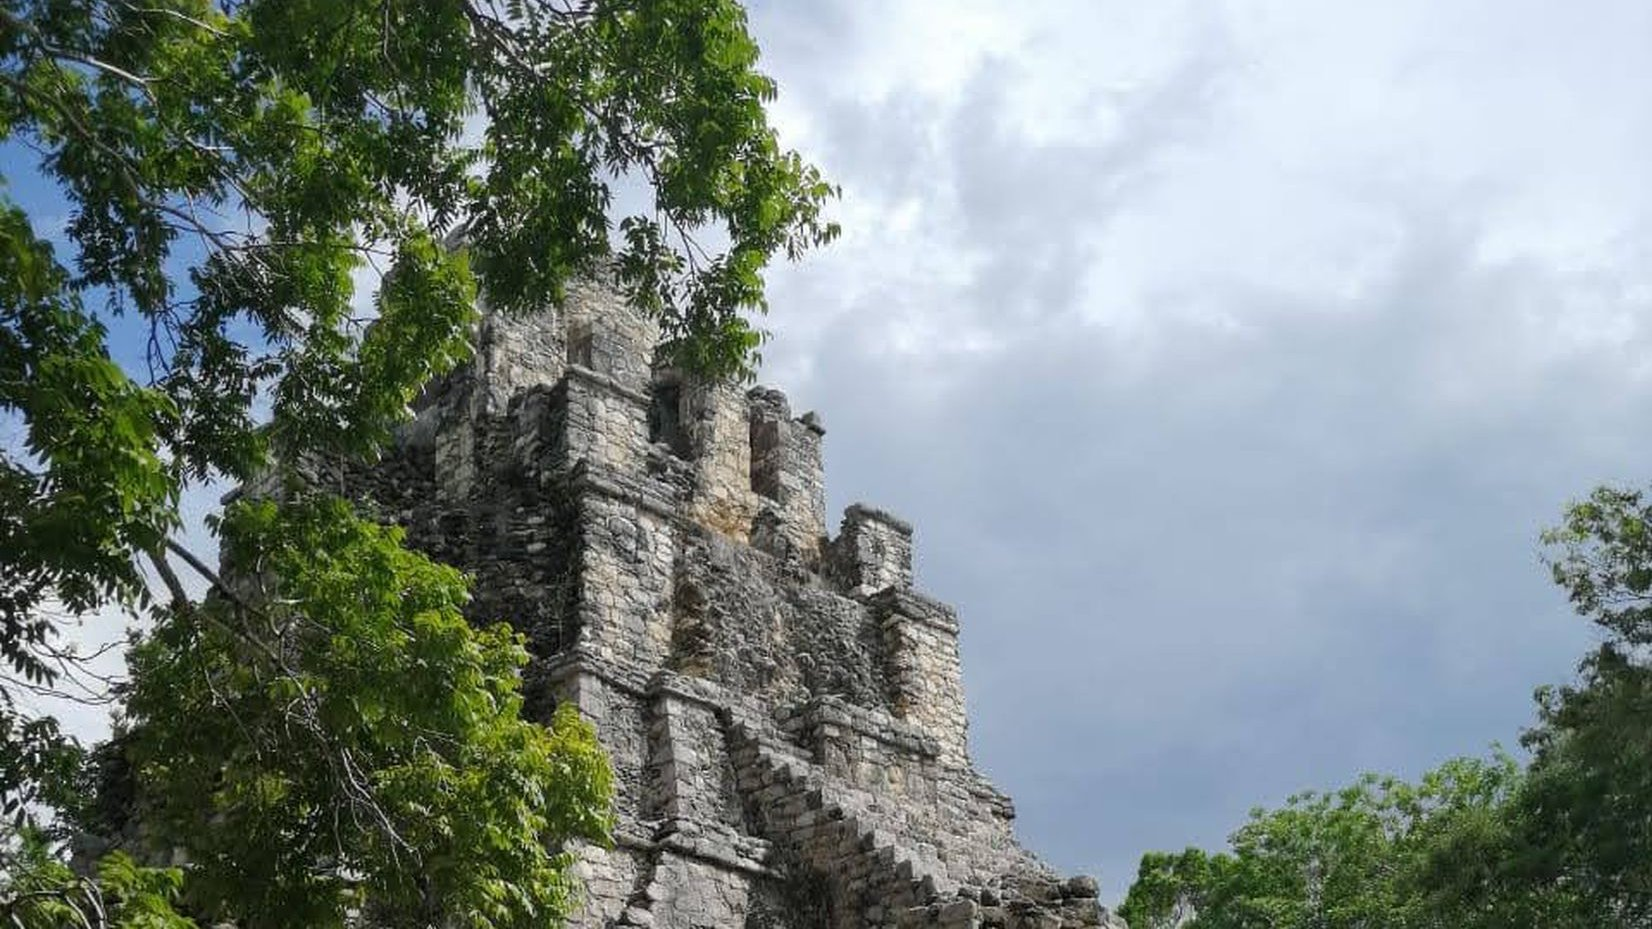 mayan archeological site